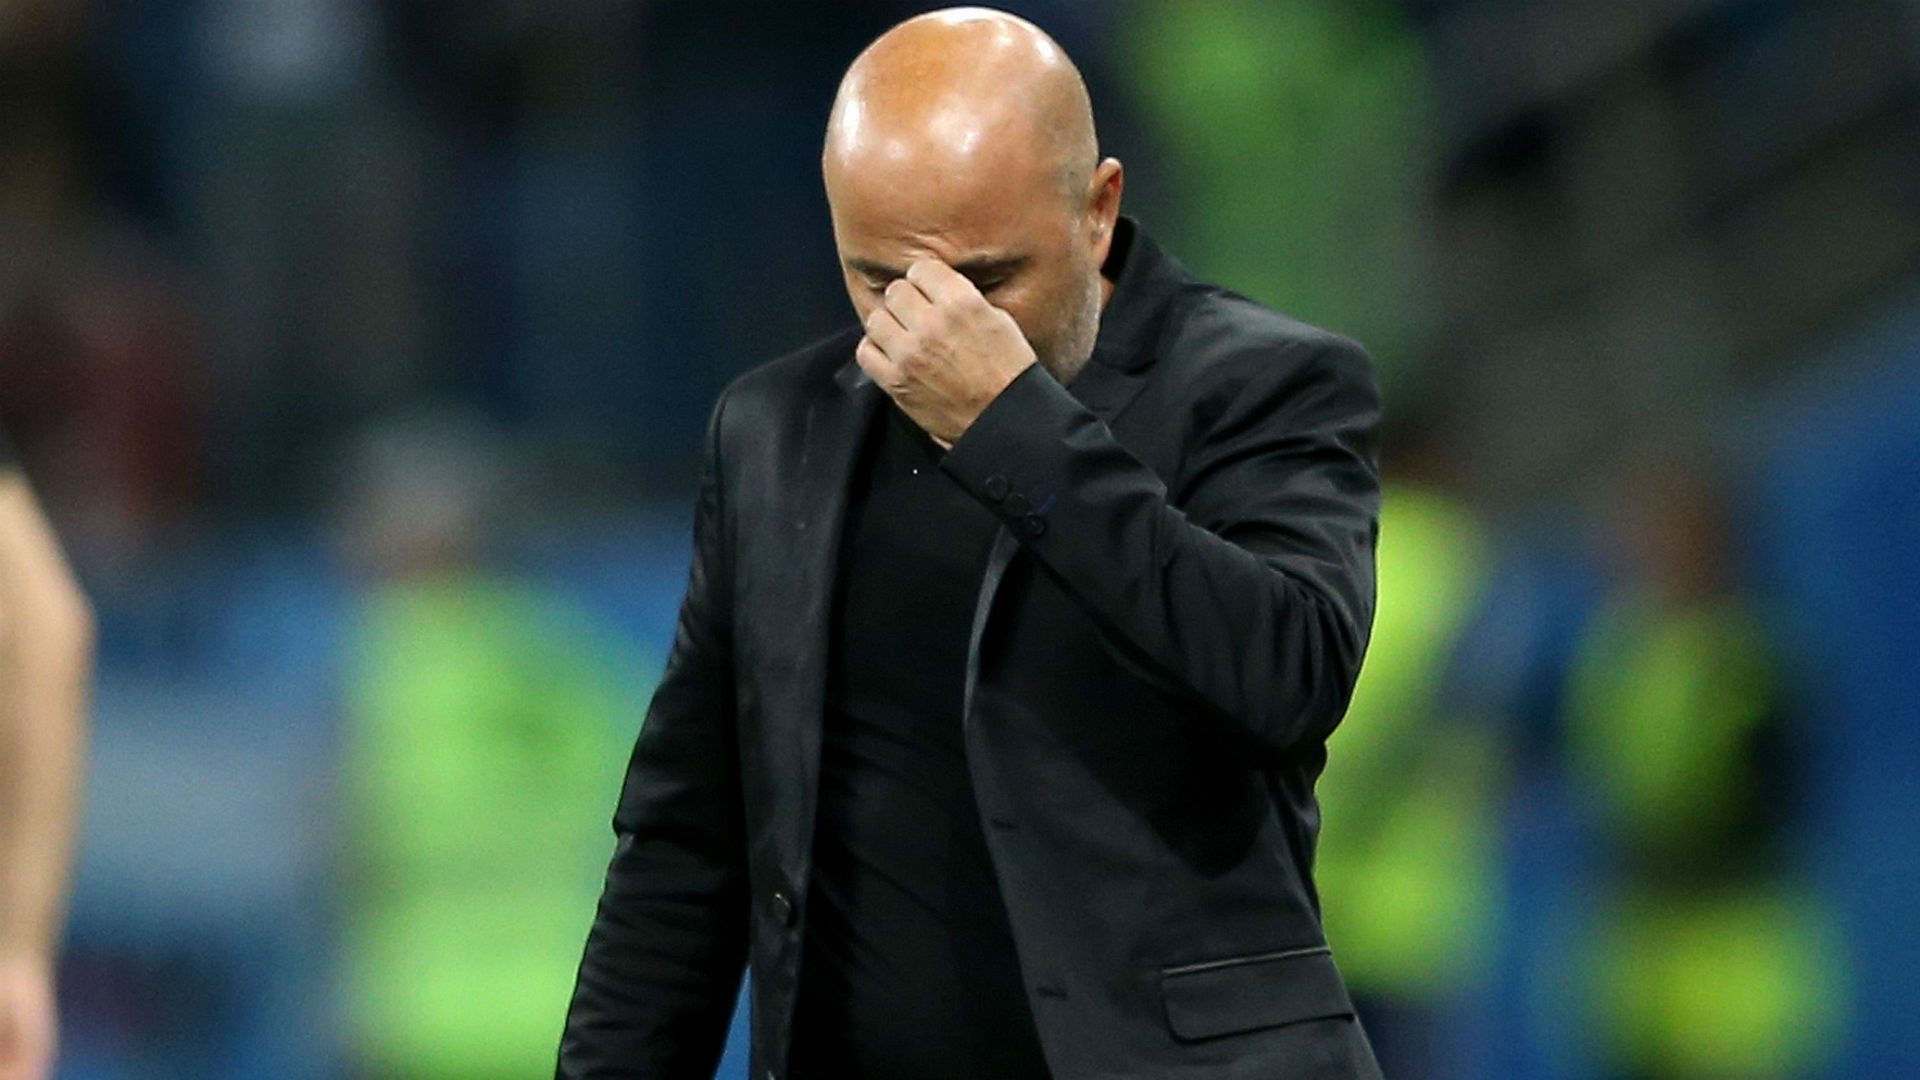 Nigeria the 1st of 5 finals for Argentina, insists Sampaoli